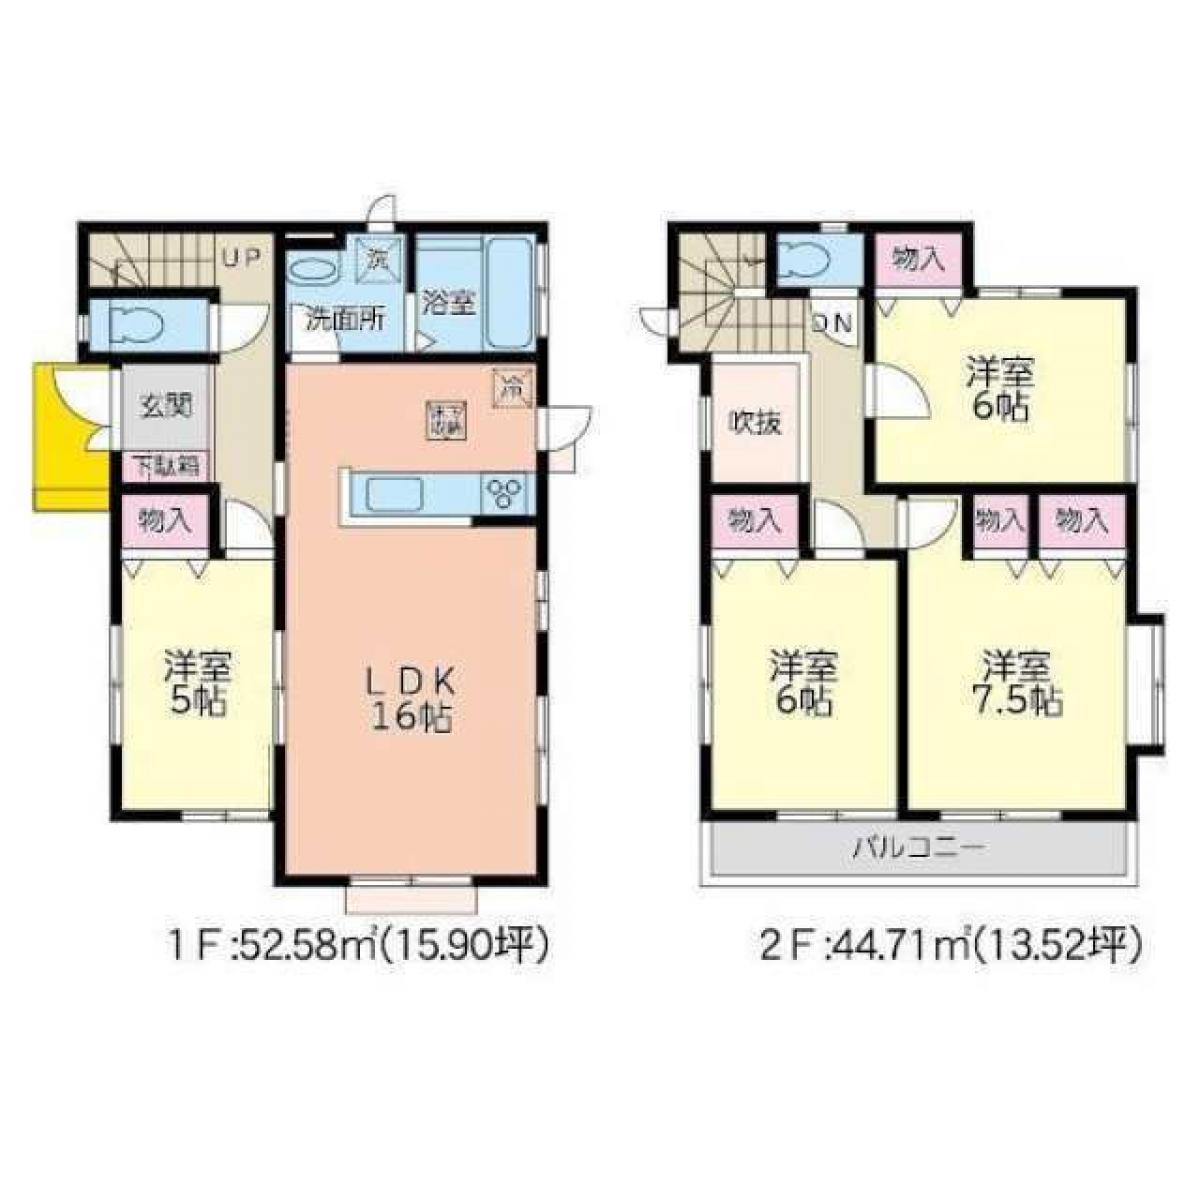 Property listed For Sale in Kashiwa Shi, Japan